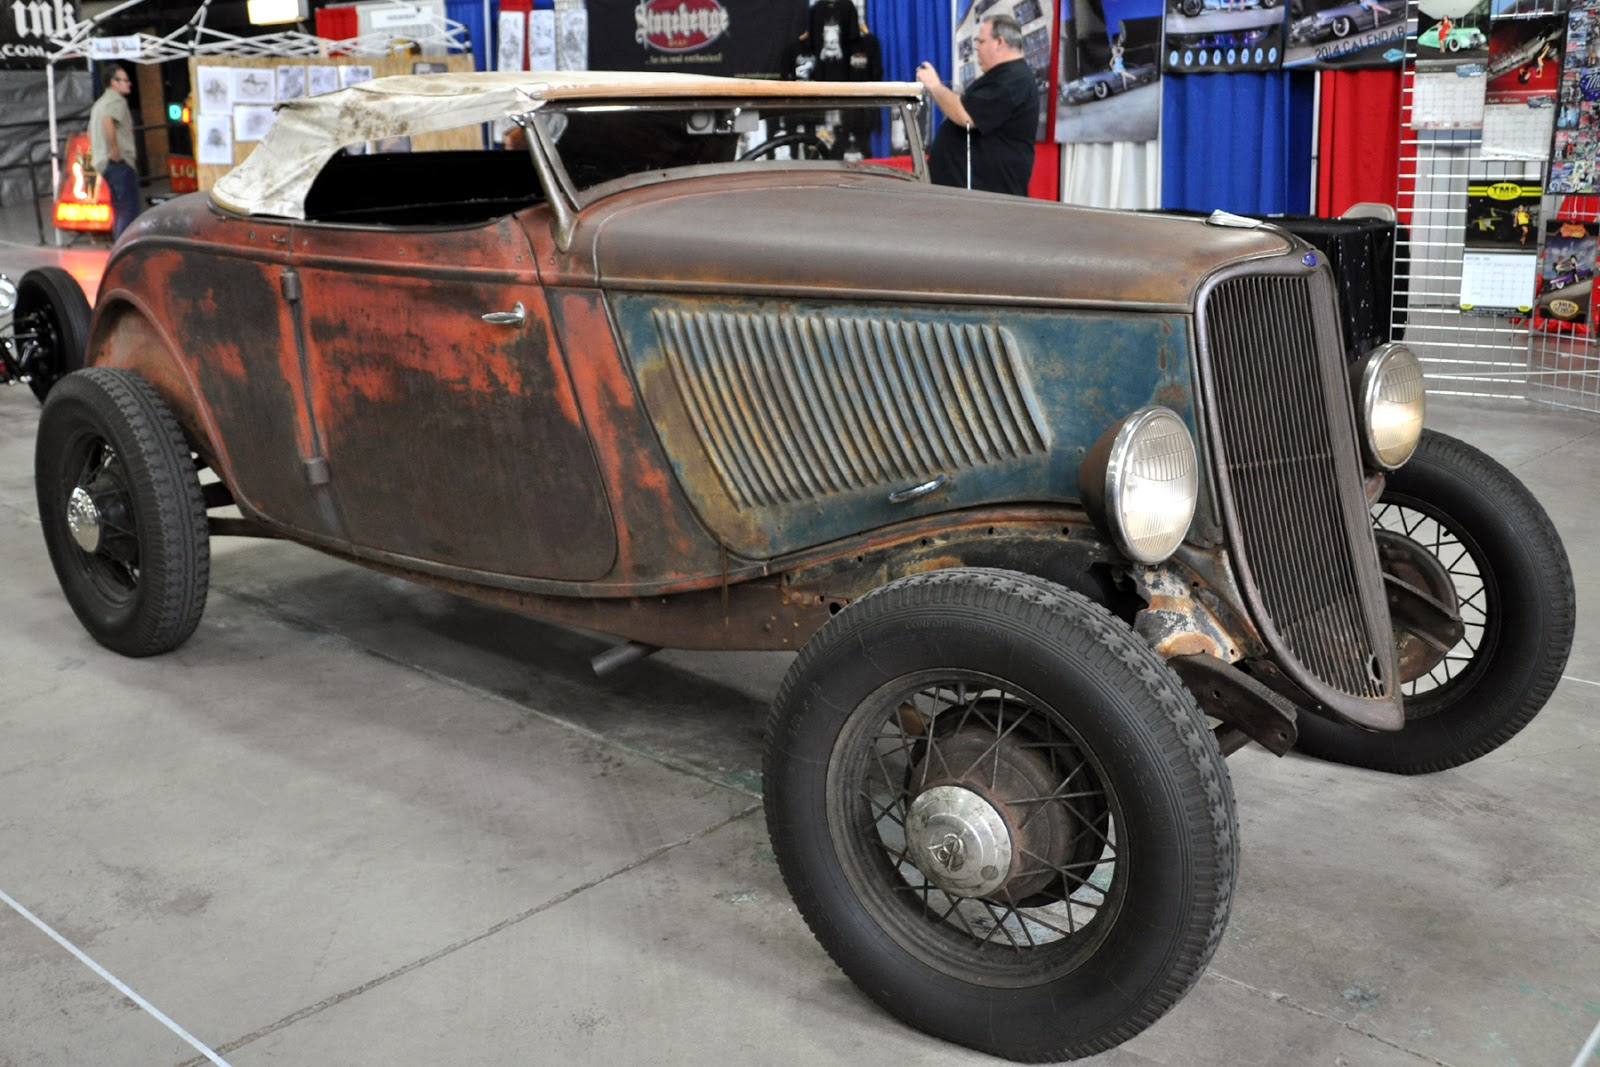 Just A Car Guy: unrestored, uncustomized, and not a rat rod. Just cool.